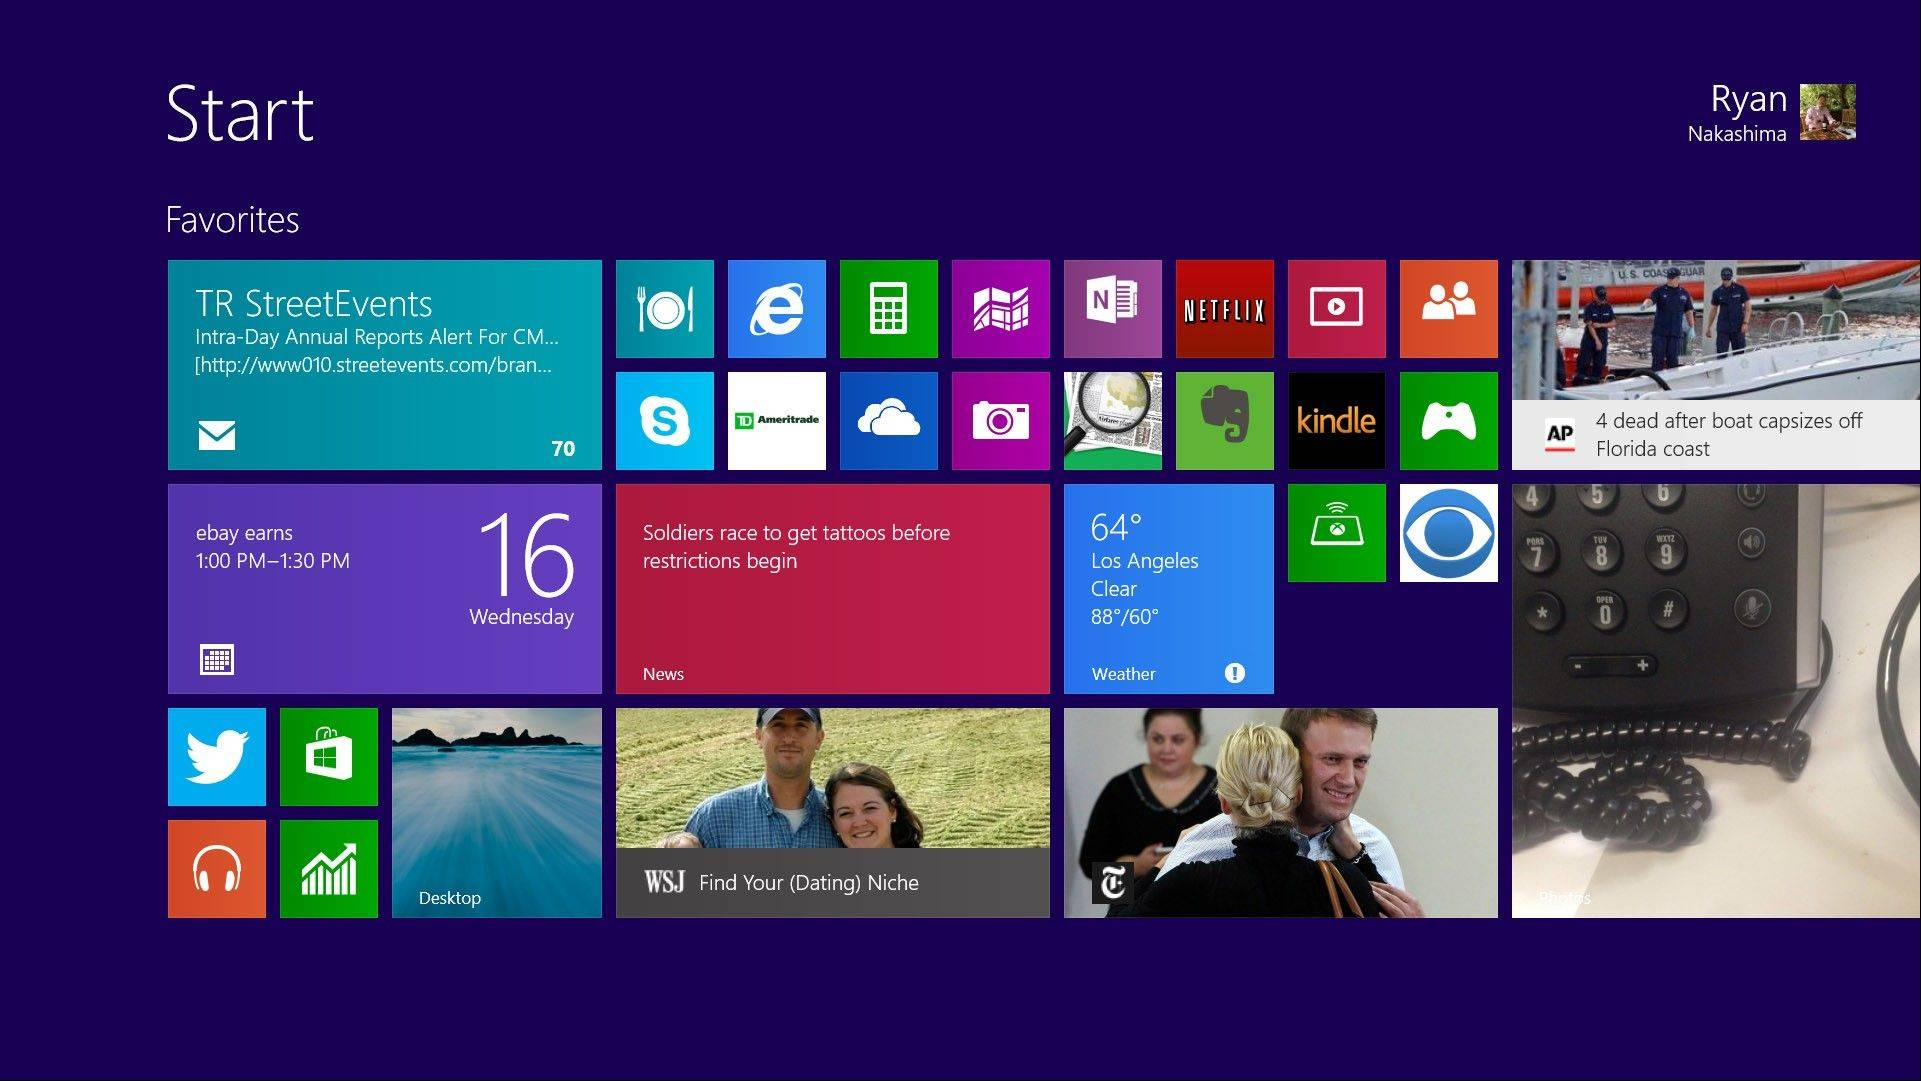 Microsoft is planning to launch its long-awaited Windows 8.1 upgrade as a free download on Thursday. It addresses some of the complaints people had with Windows 8, the redesigned operating system released in October 2012 that attempts to bridge the divide between tablets and PCs.